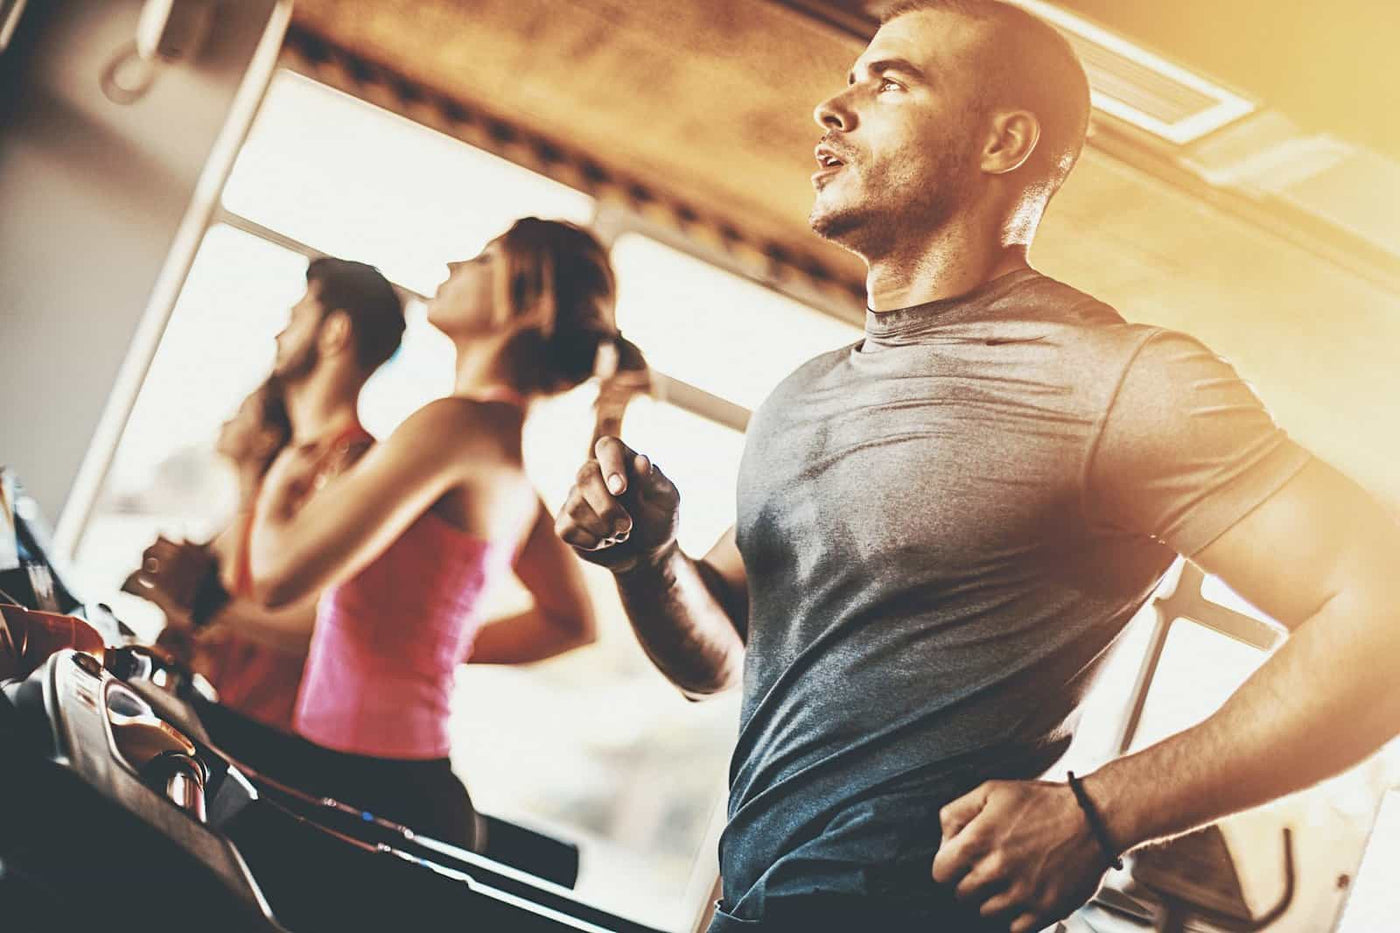 Sweating man running on treadmill